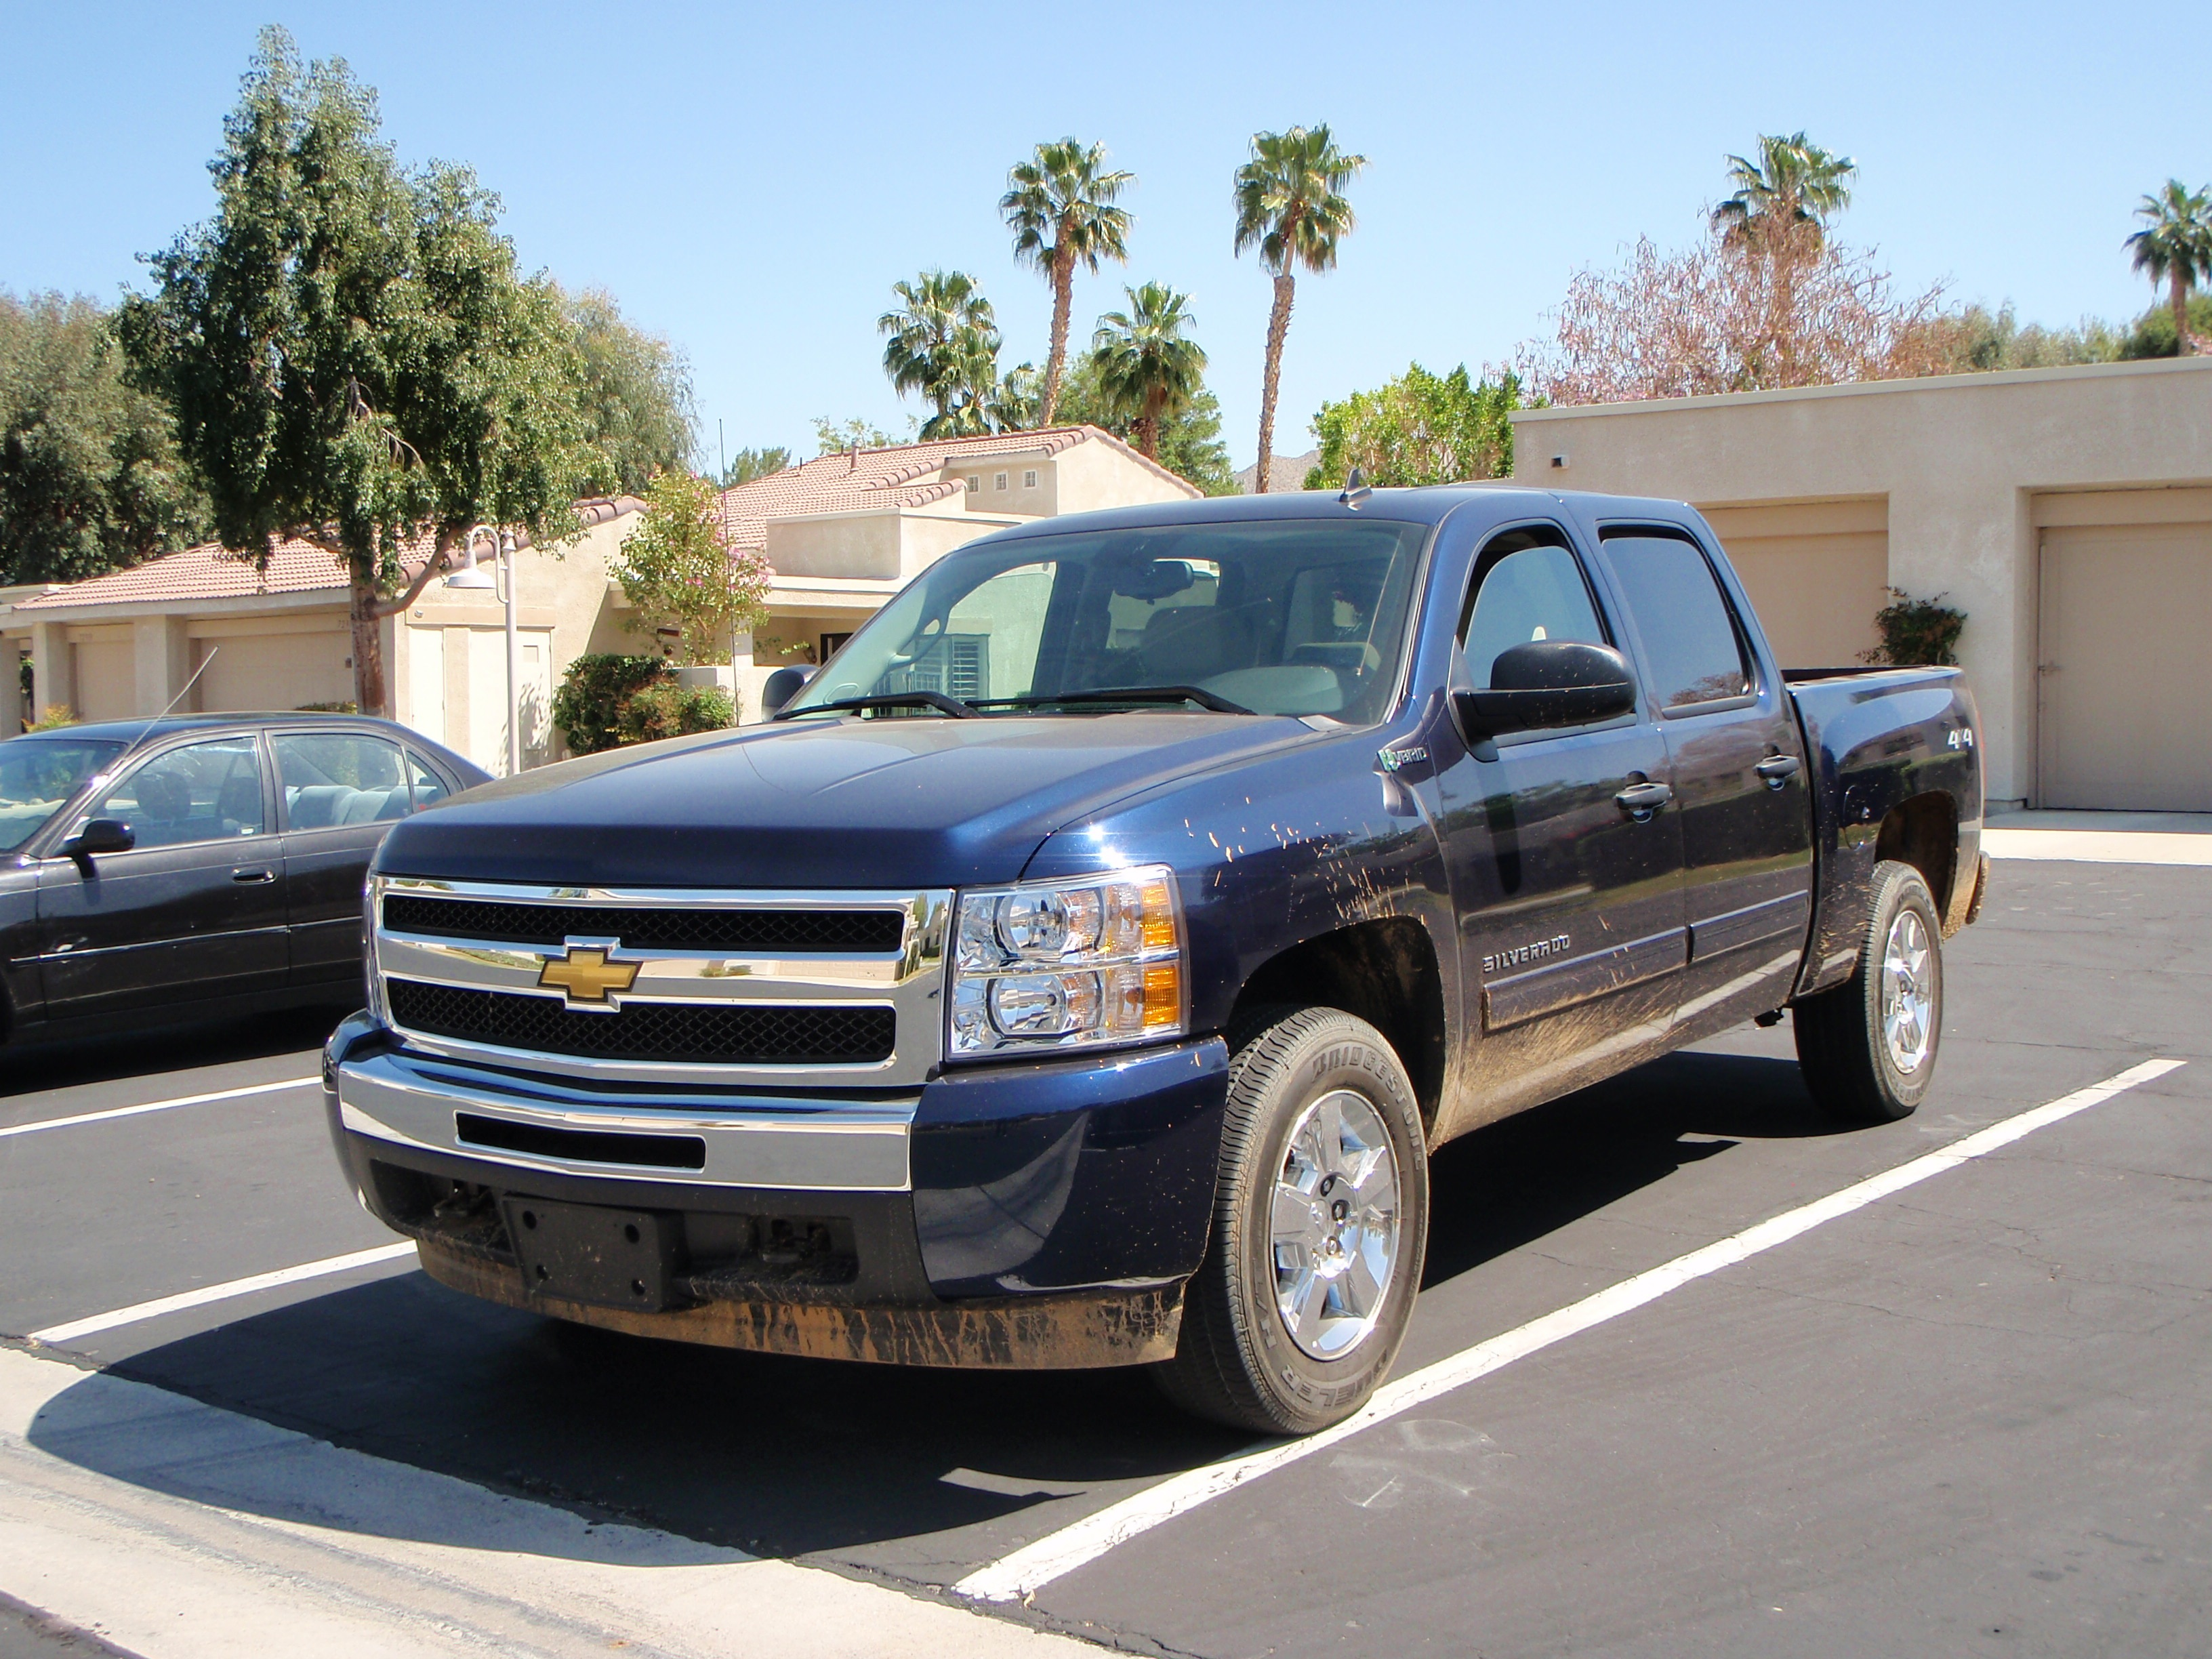 transmission ltz comes heated bed it silverado short crew leather navigation w pin cab allison chevrolet diesel with duramax climate control package